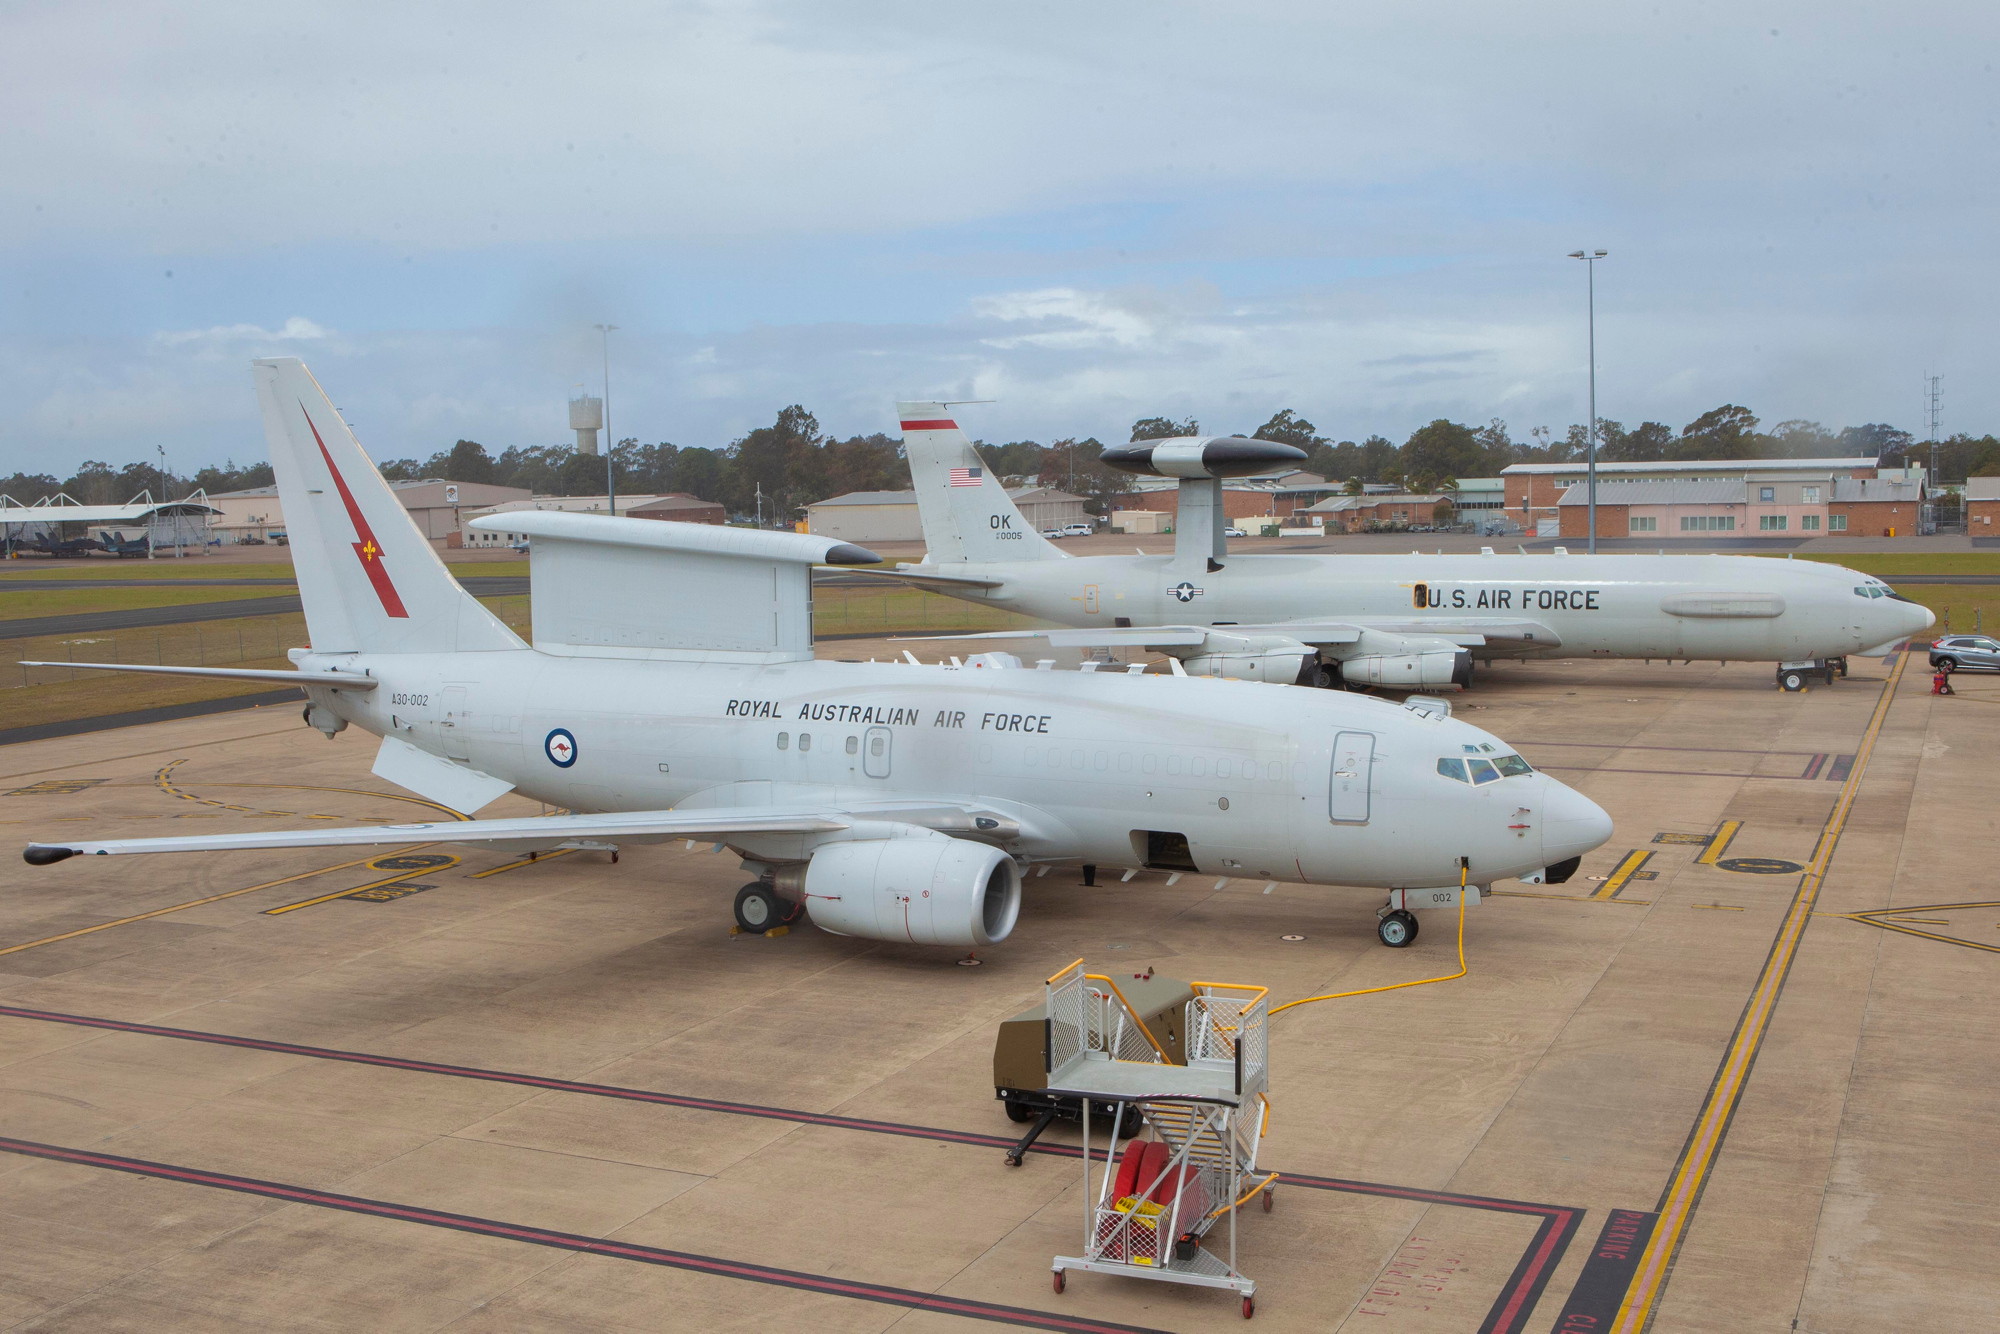 A RAAF E-7A Wedgetail and USAF E-3 Sentry sit side by side at RAAF Williamtown.